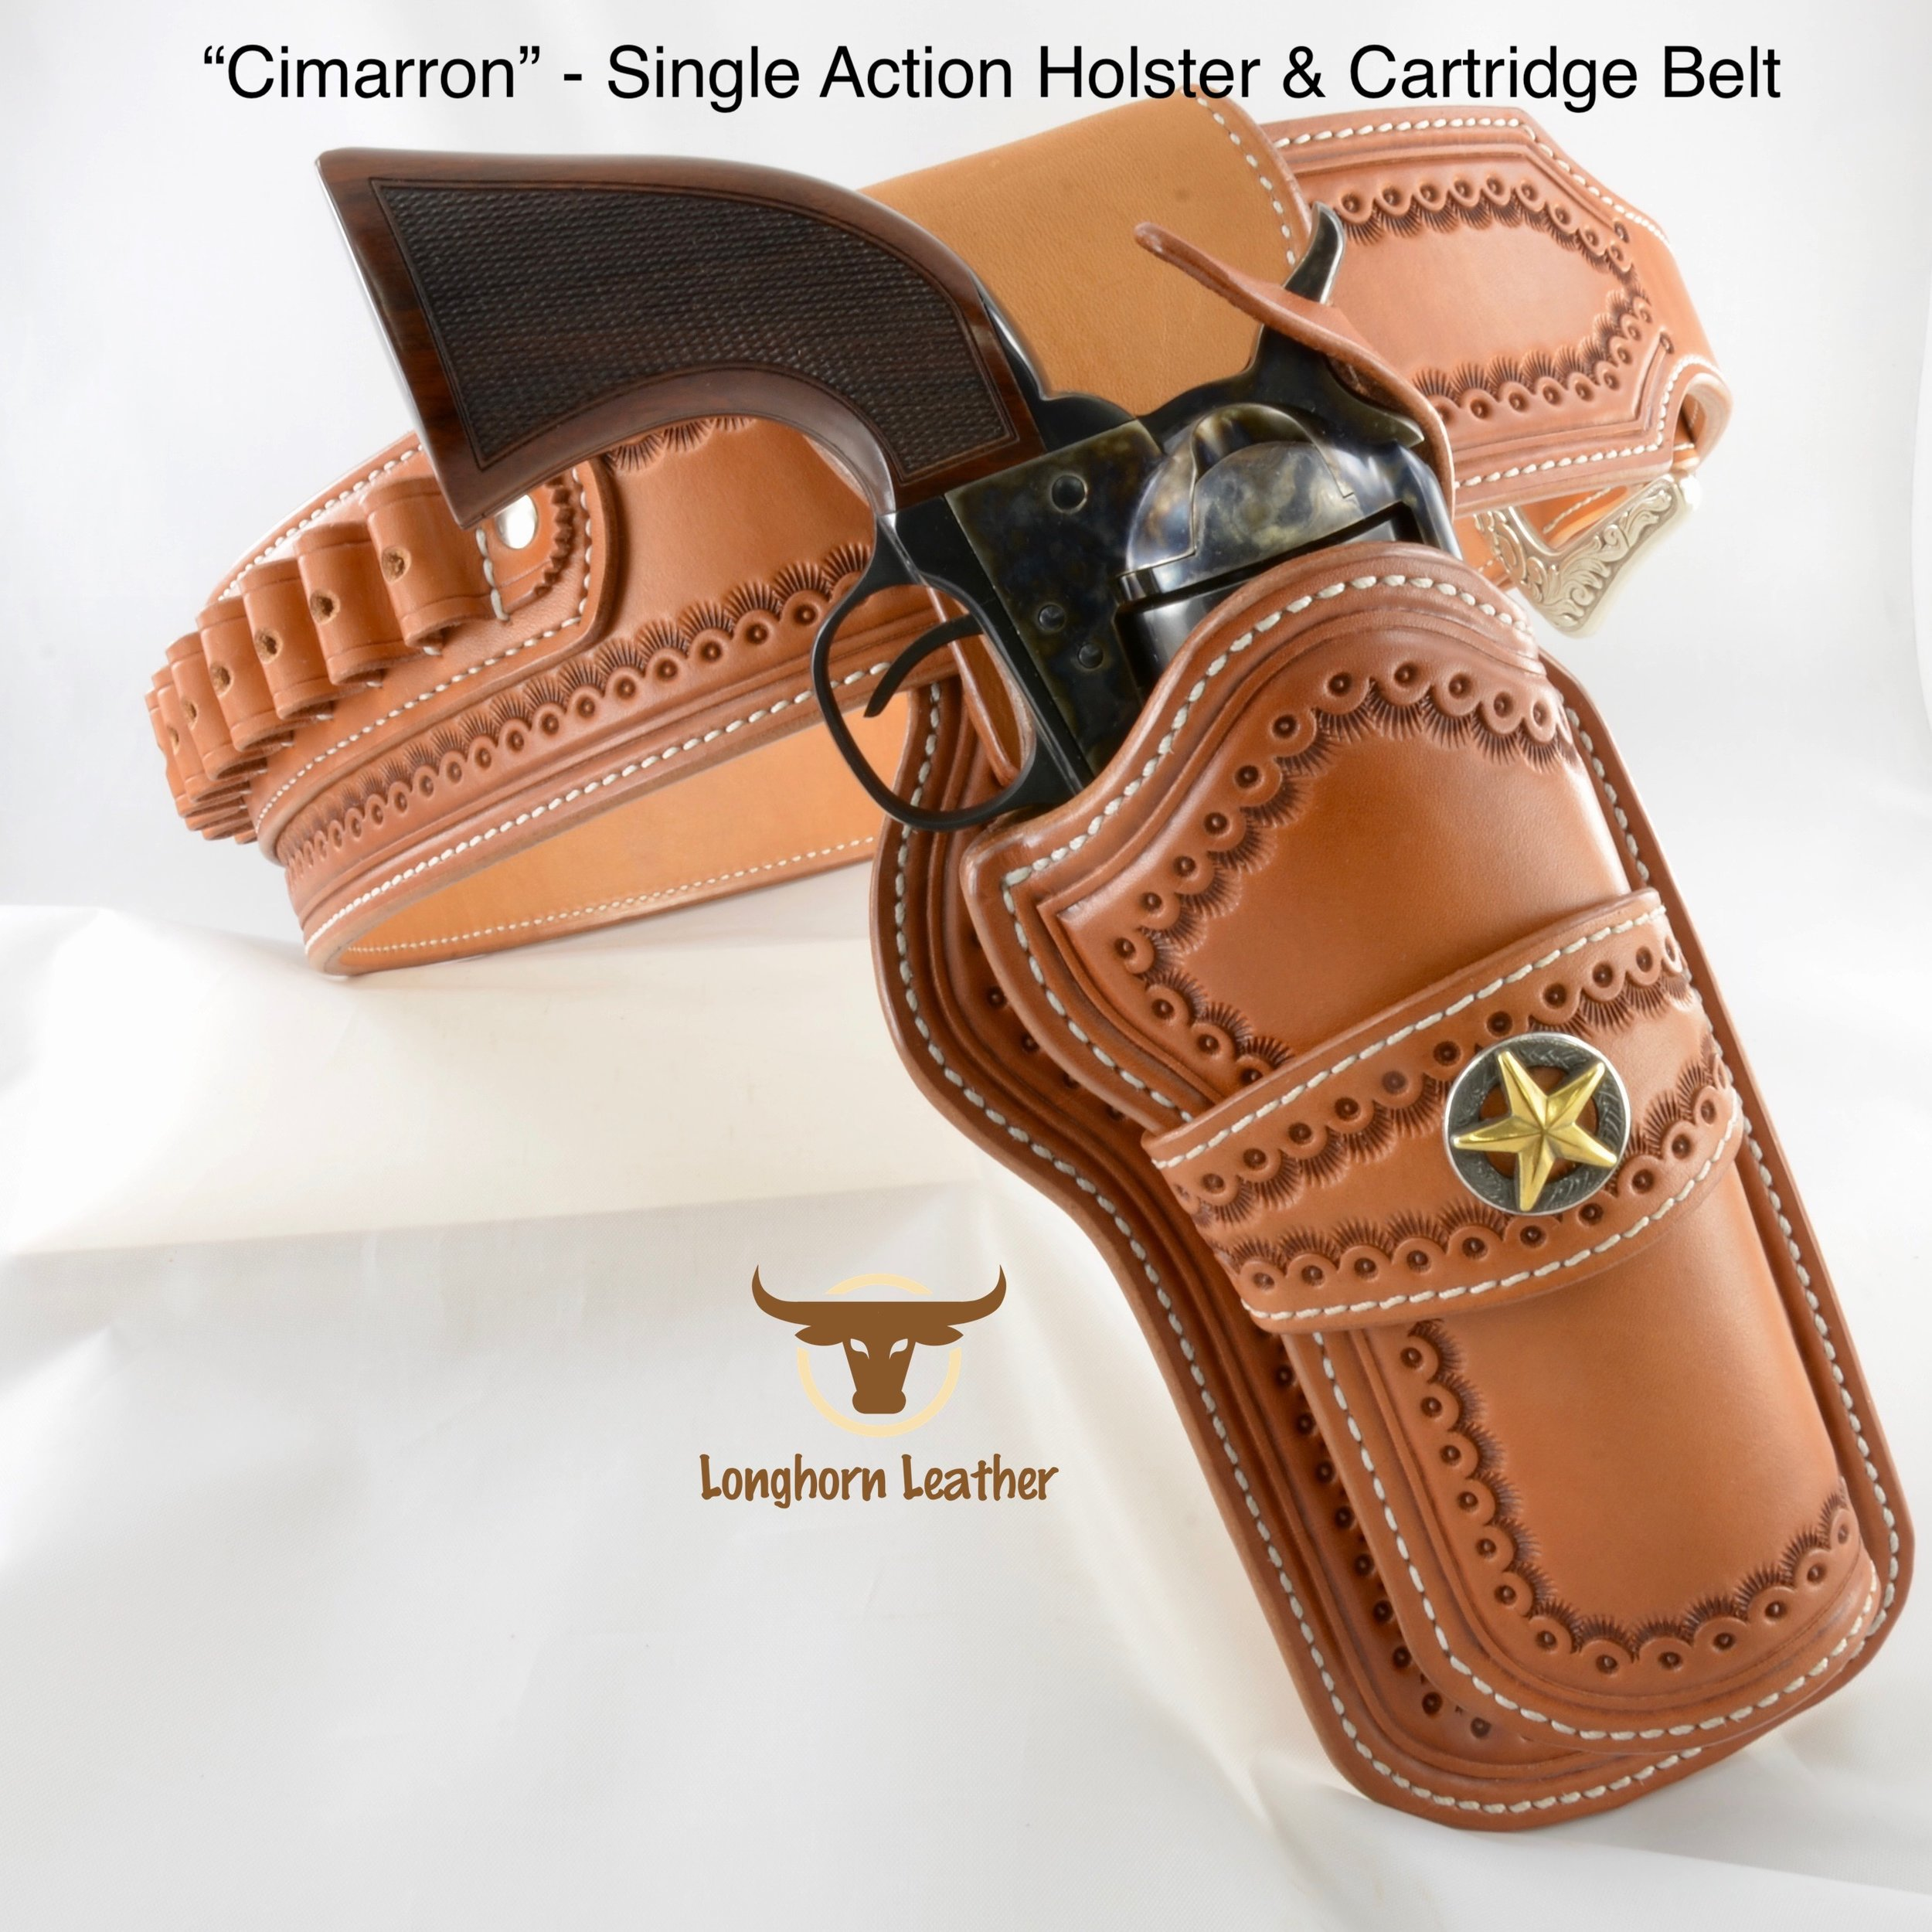 """Cimarron"" - Single Action holster and cartridge belt"